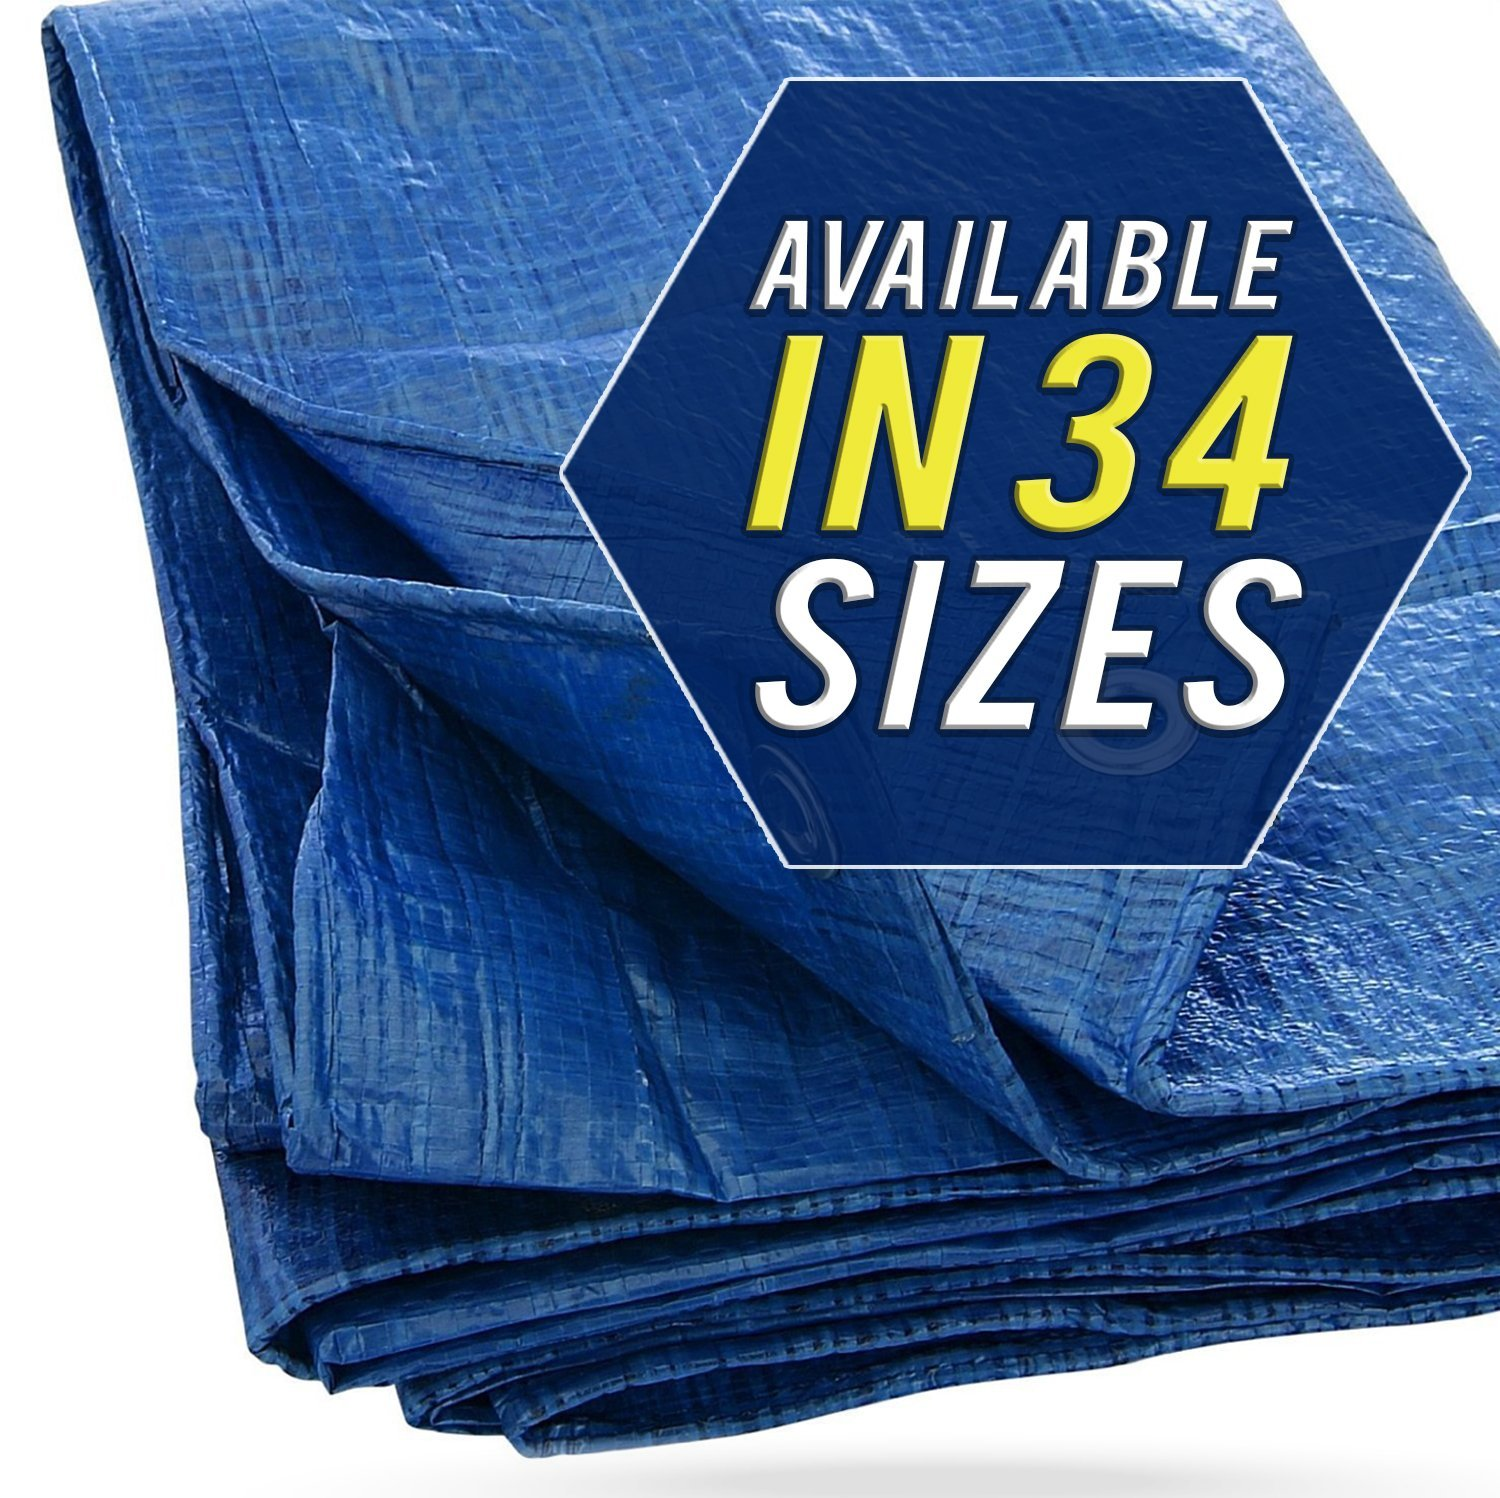 Tarp Cover 20X40 Blue, Waterproof, Great for Tarpaulin Canopy Tent, Boat, RV or Pool Cover!!!